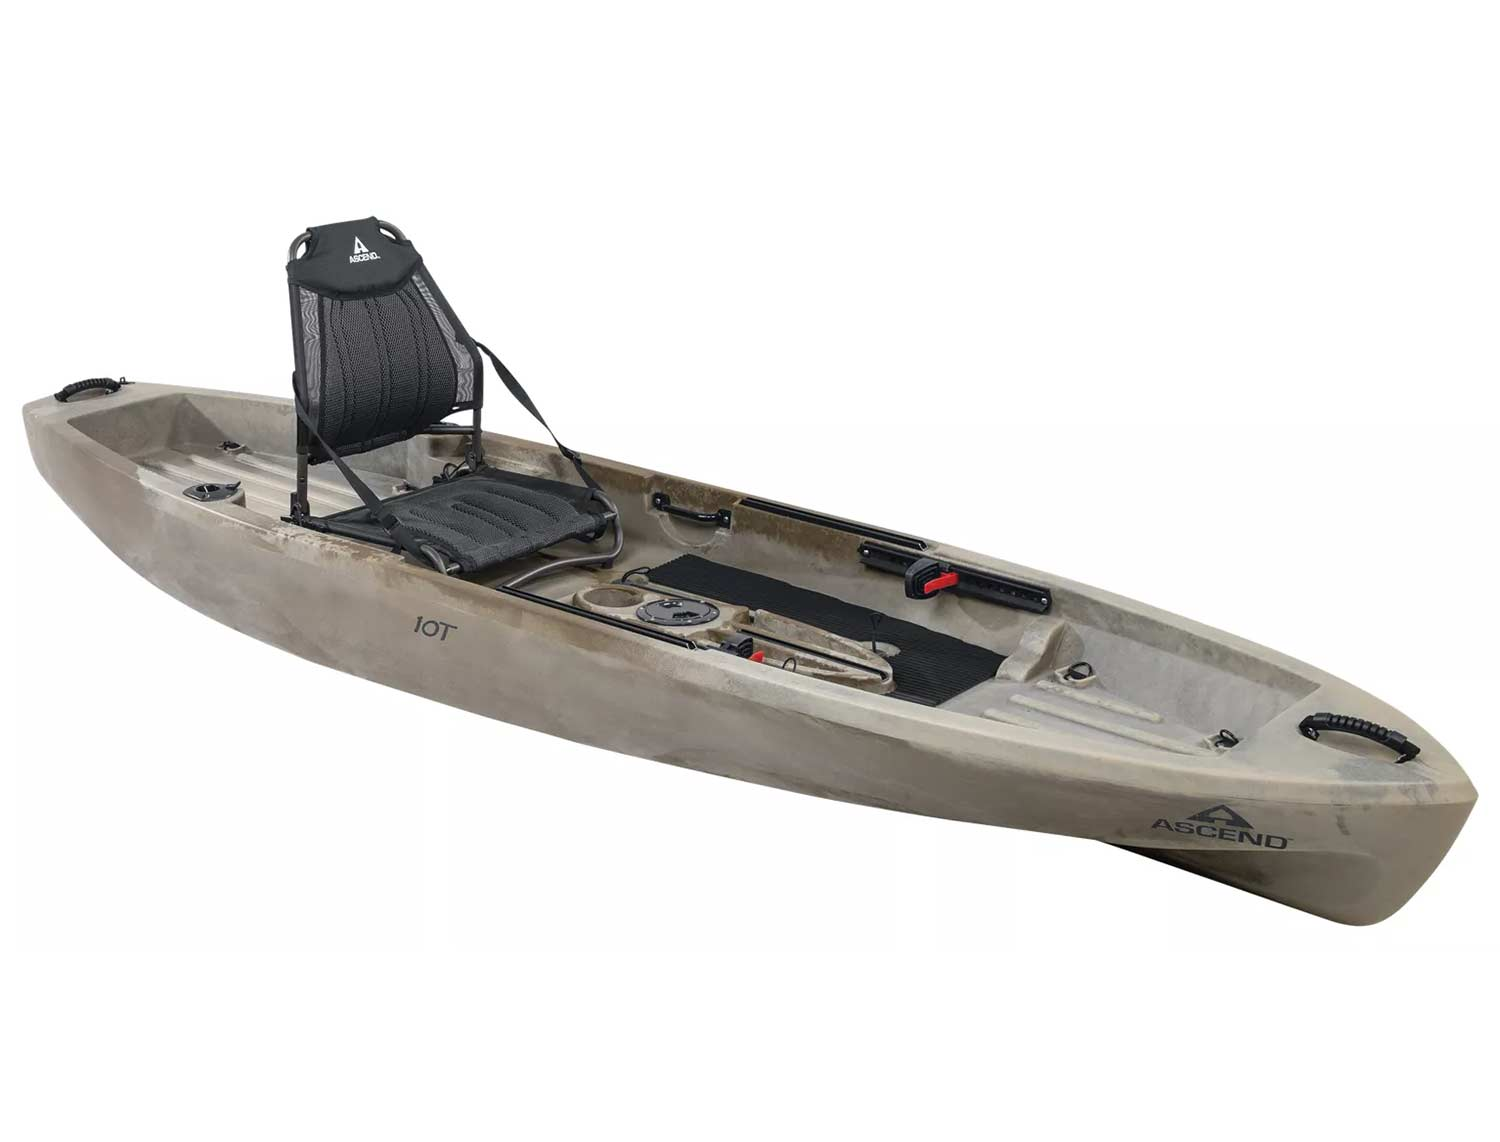 The Ascend 10T Sit-On-Top Kayak.